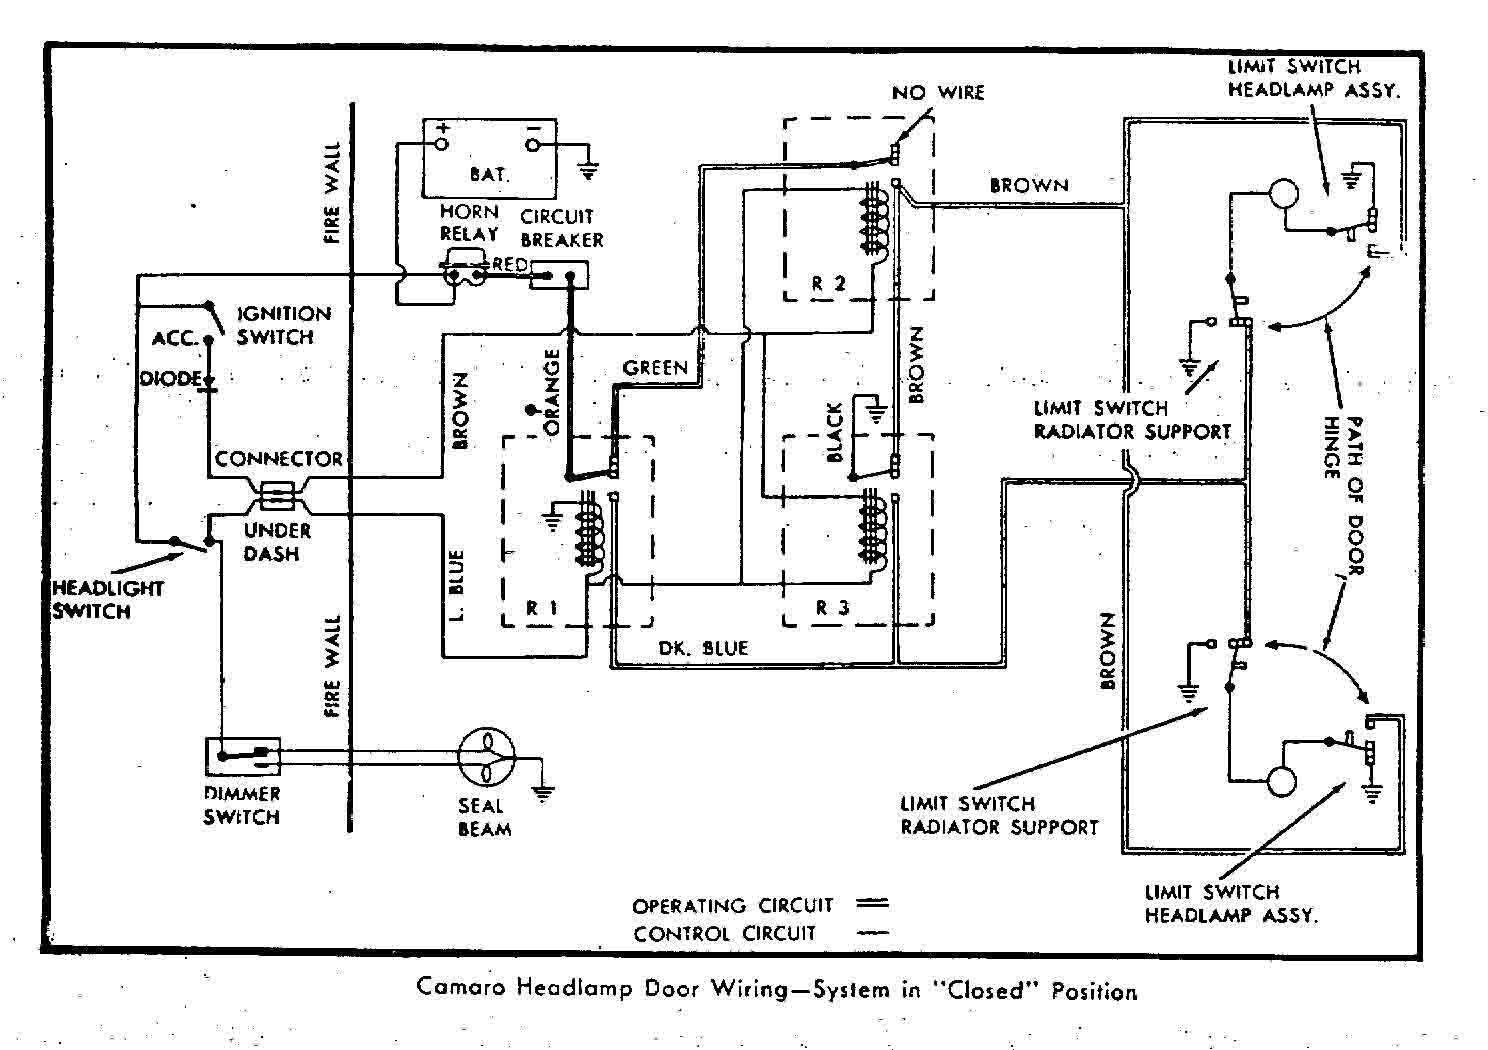 1967 chevy pickup headlight wiring diagram 67 camaro headlight wiring harness schematic | 1967 camaro ...